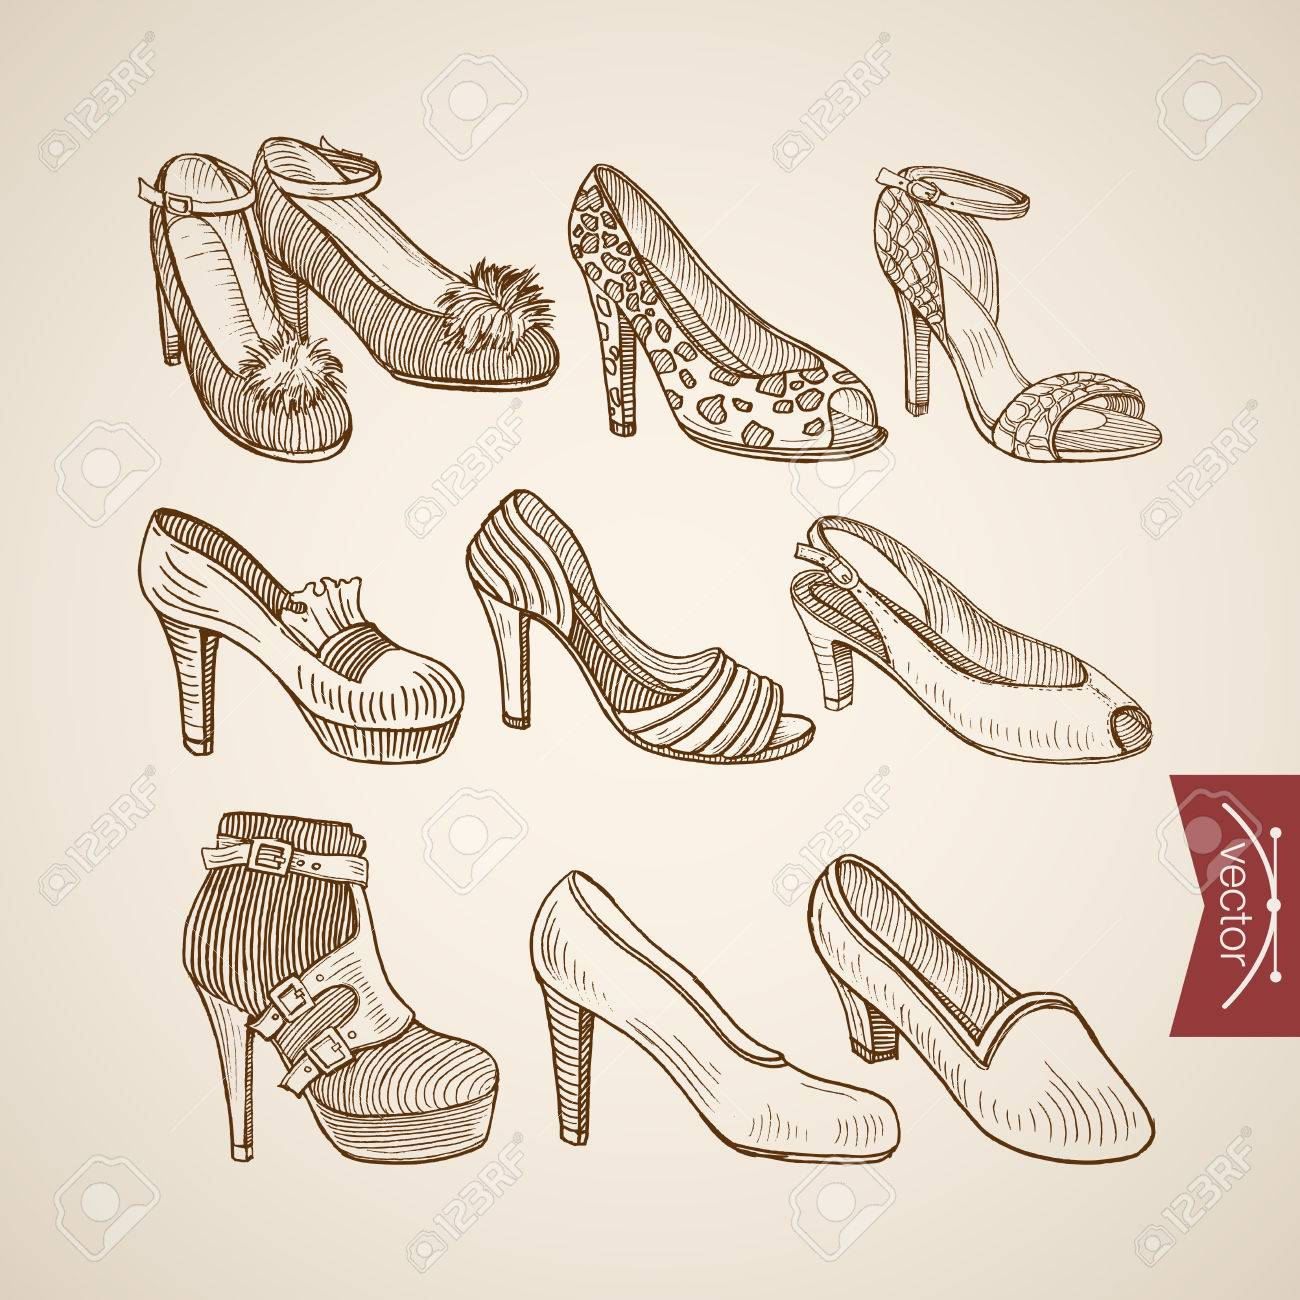 f1c4a3f3e3a902 Engraving vintage hand drawn sandals shoes on heels doodle collage. Pencil  Sketch retro fashion illustration